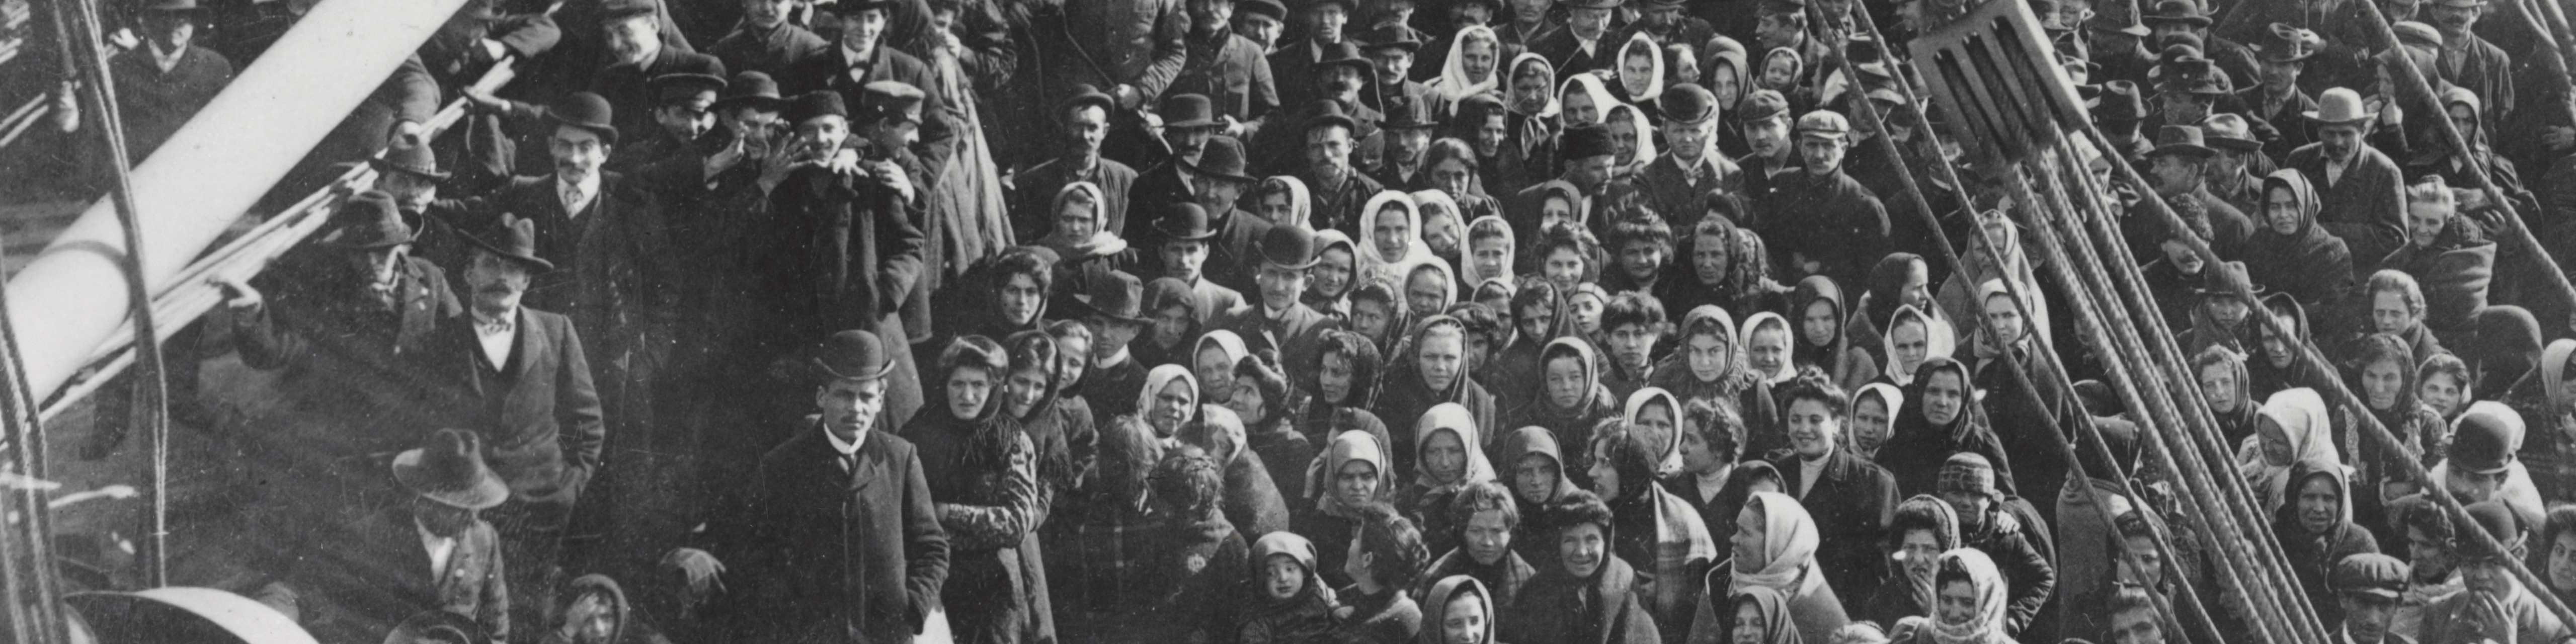 A black and white photograph from 1906 showing a crowd of men and women immigrants on deck of the S.S. Patricia facing camera